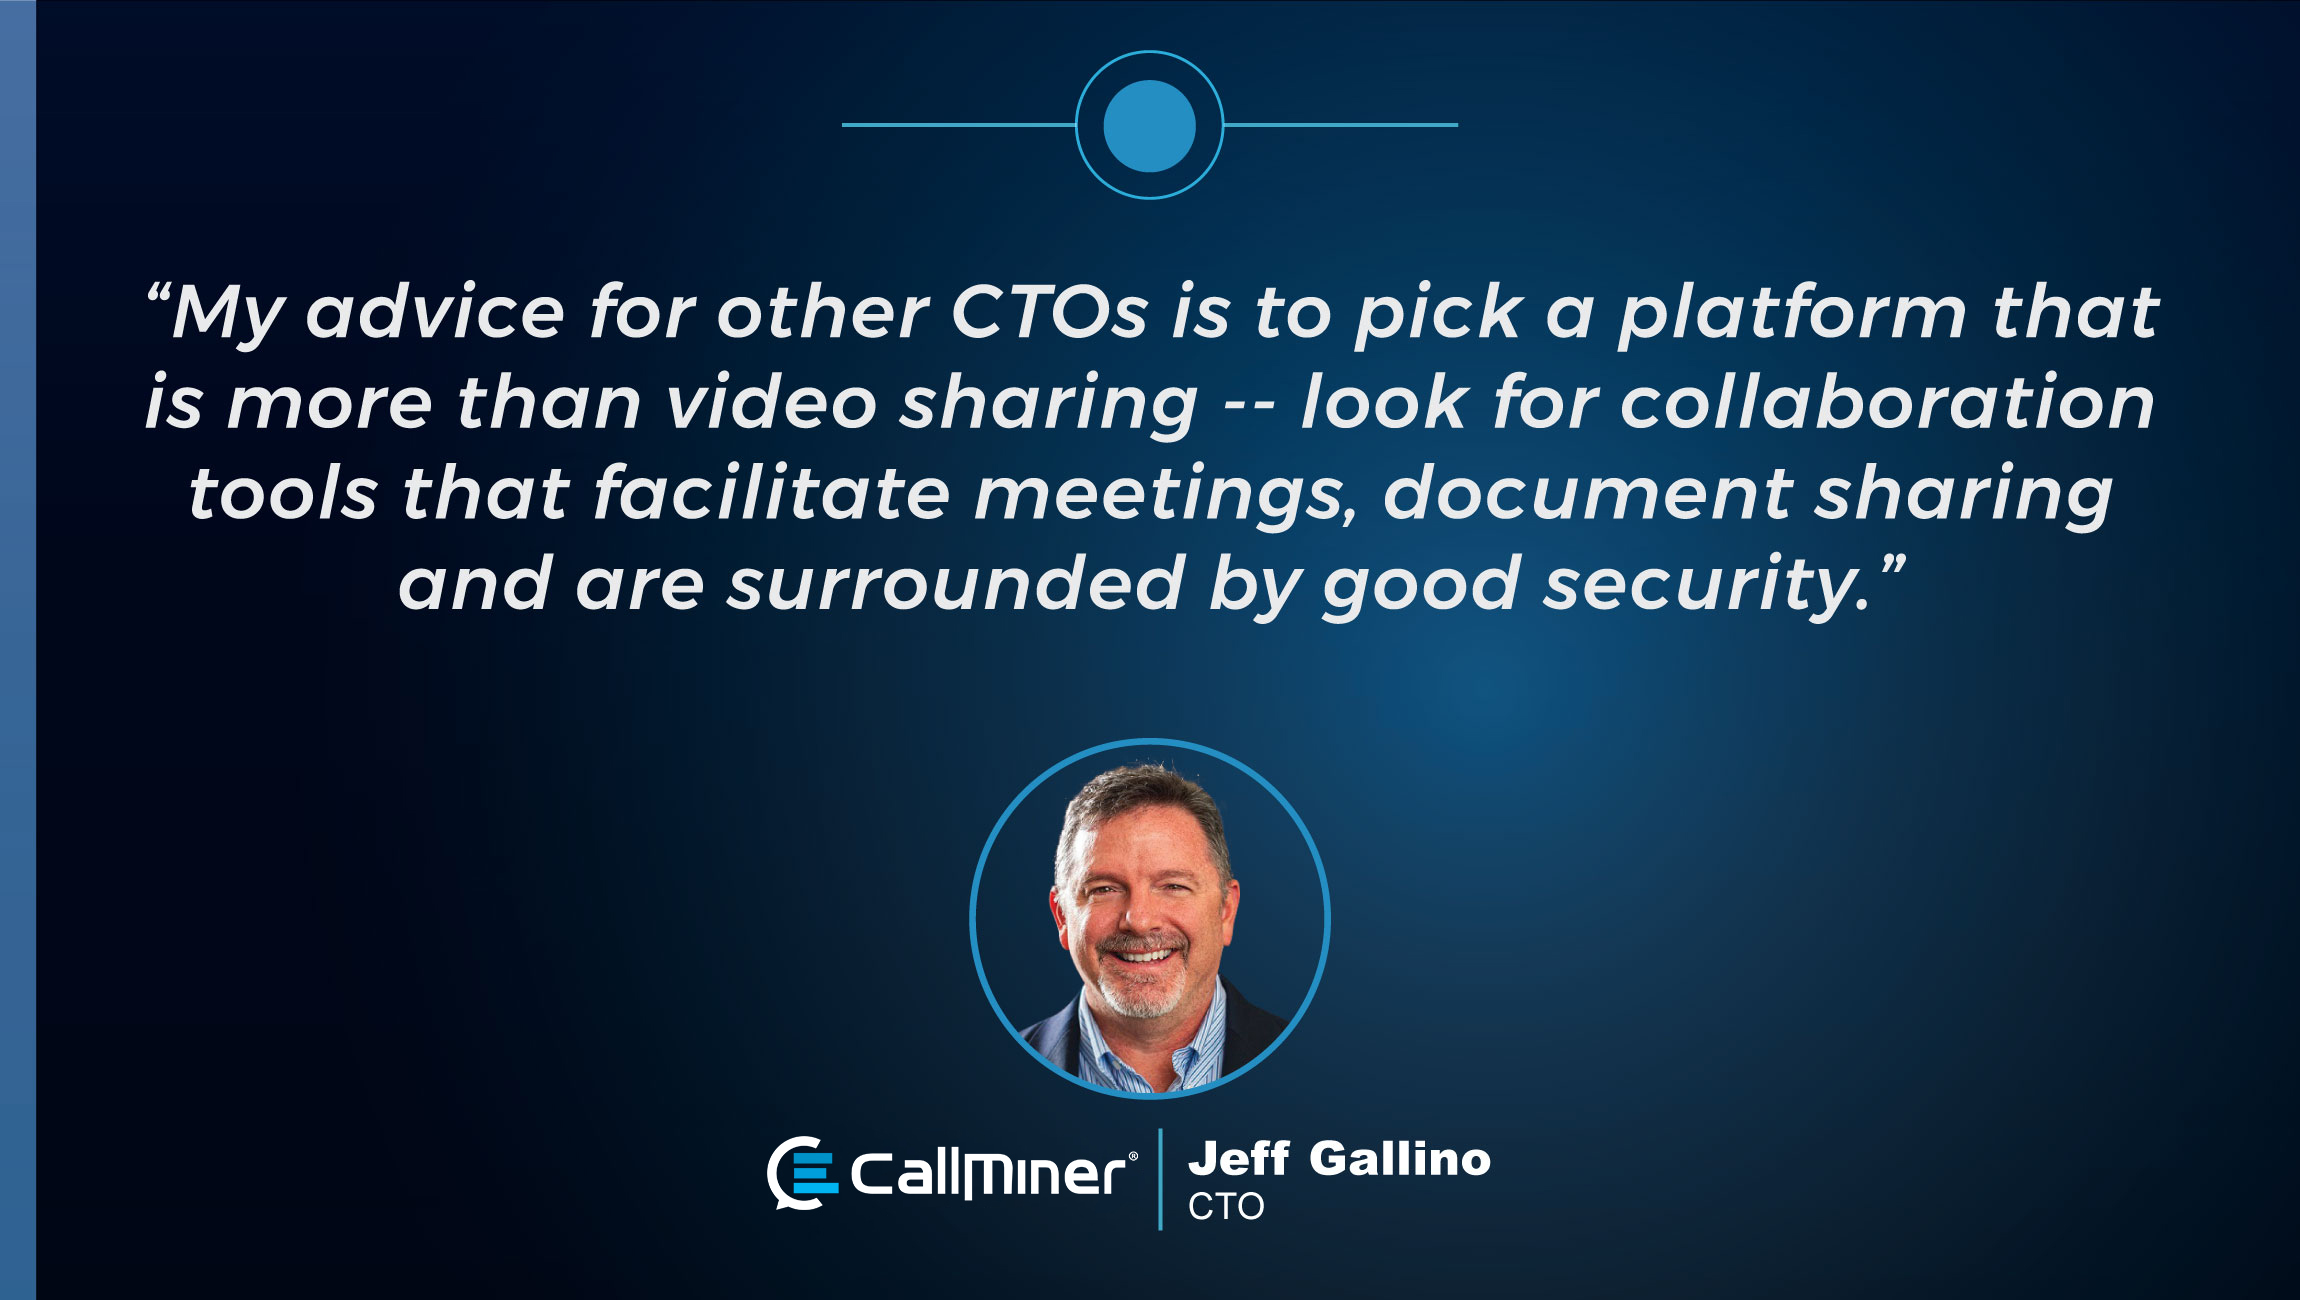 TechBytes with Jeff Gallino, Co-Founder and CTO at CallMiner